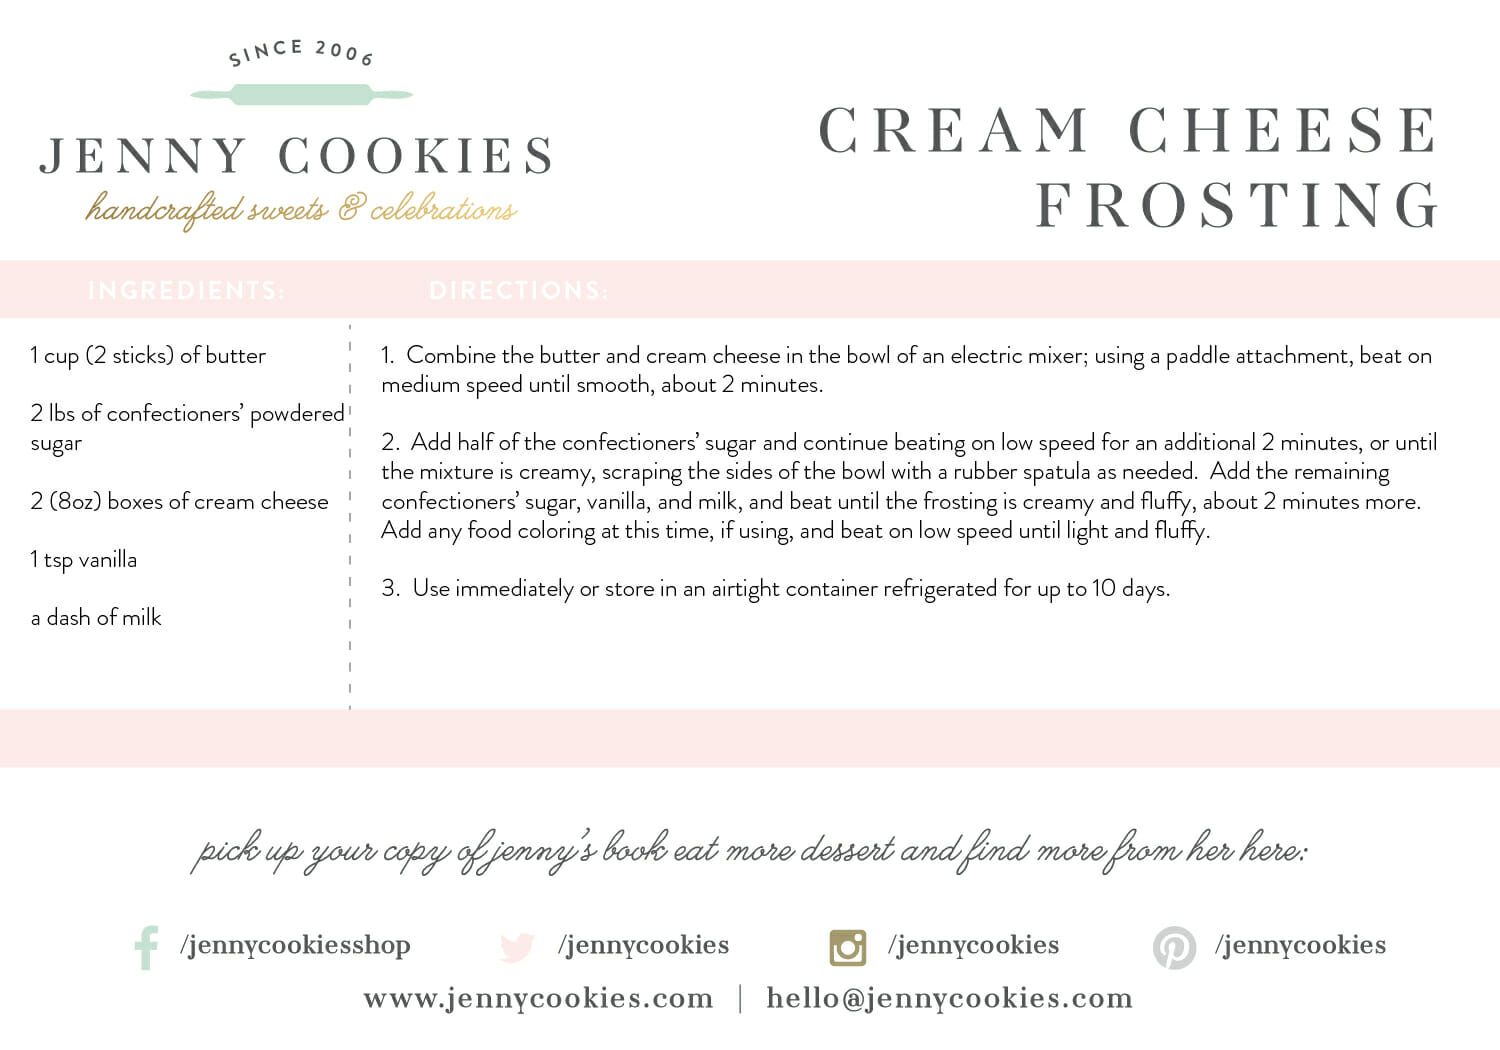 jenny-cookies-cream-cheese-frosting-01